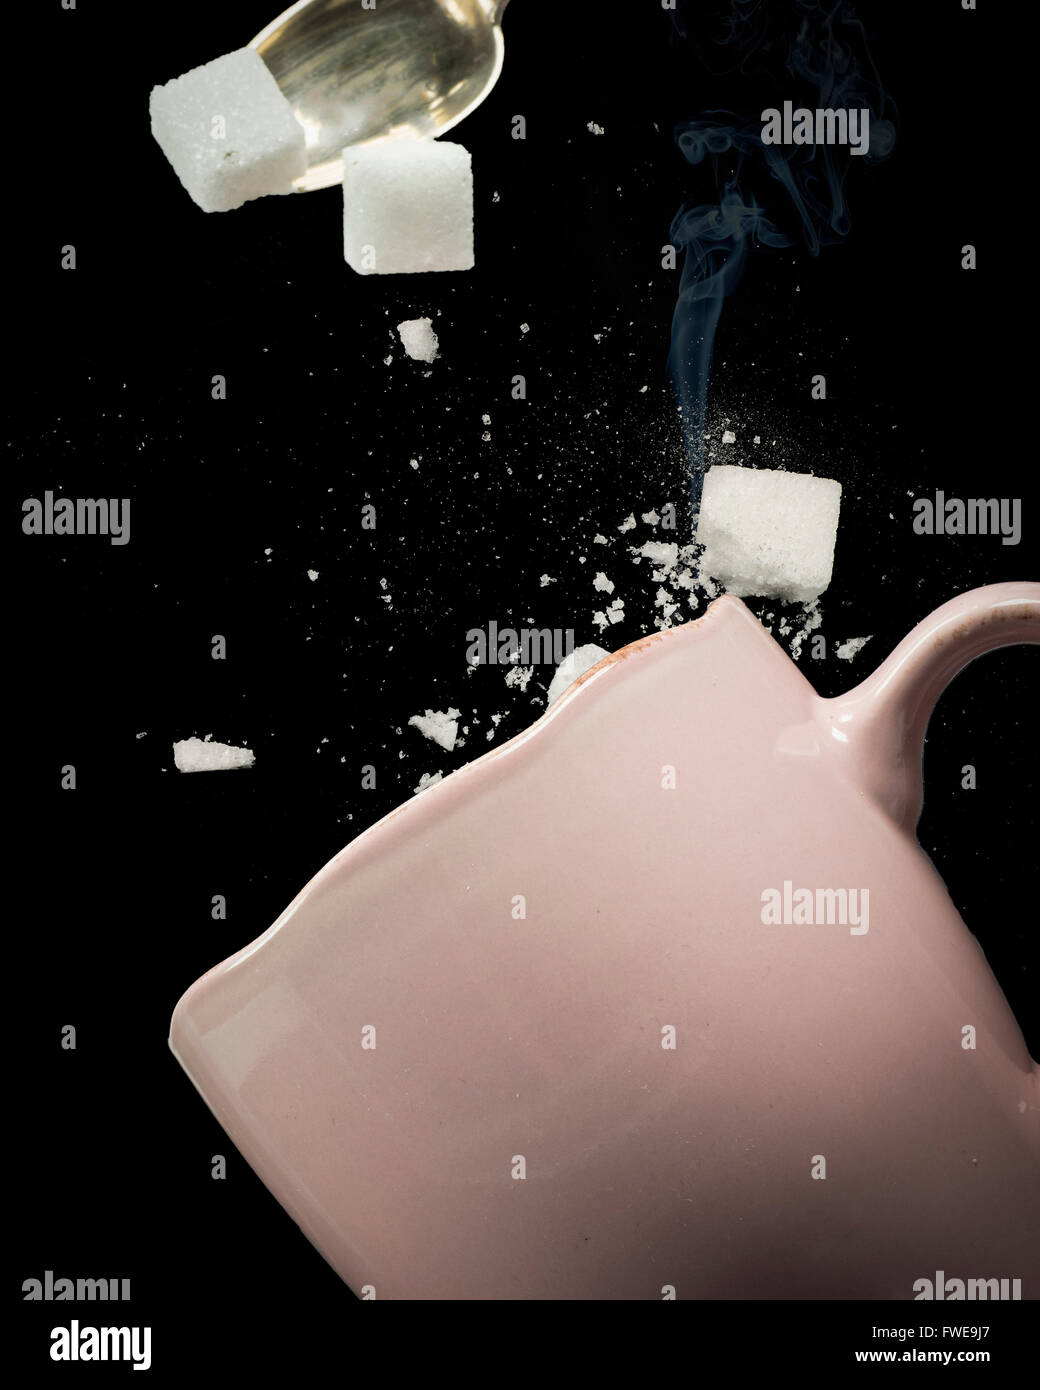 Sugar cubes misses the cup - Stock Image